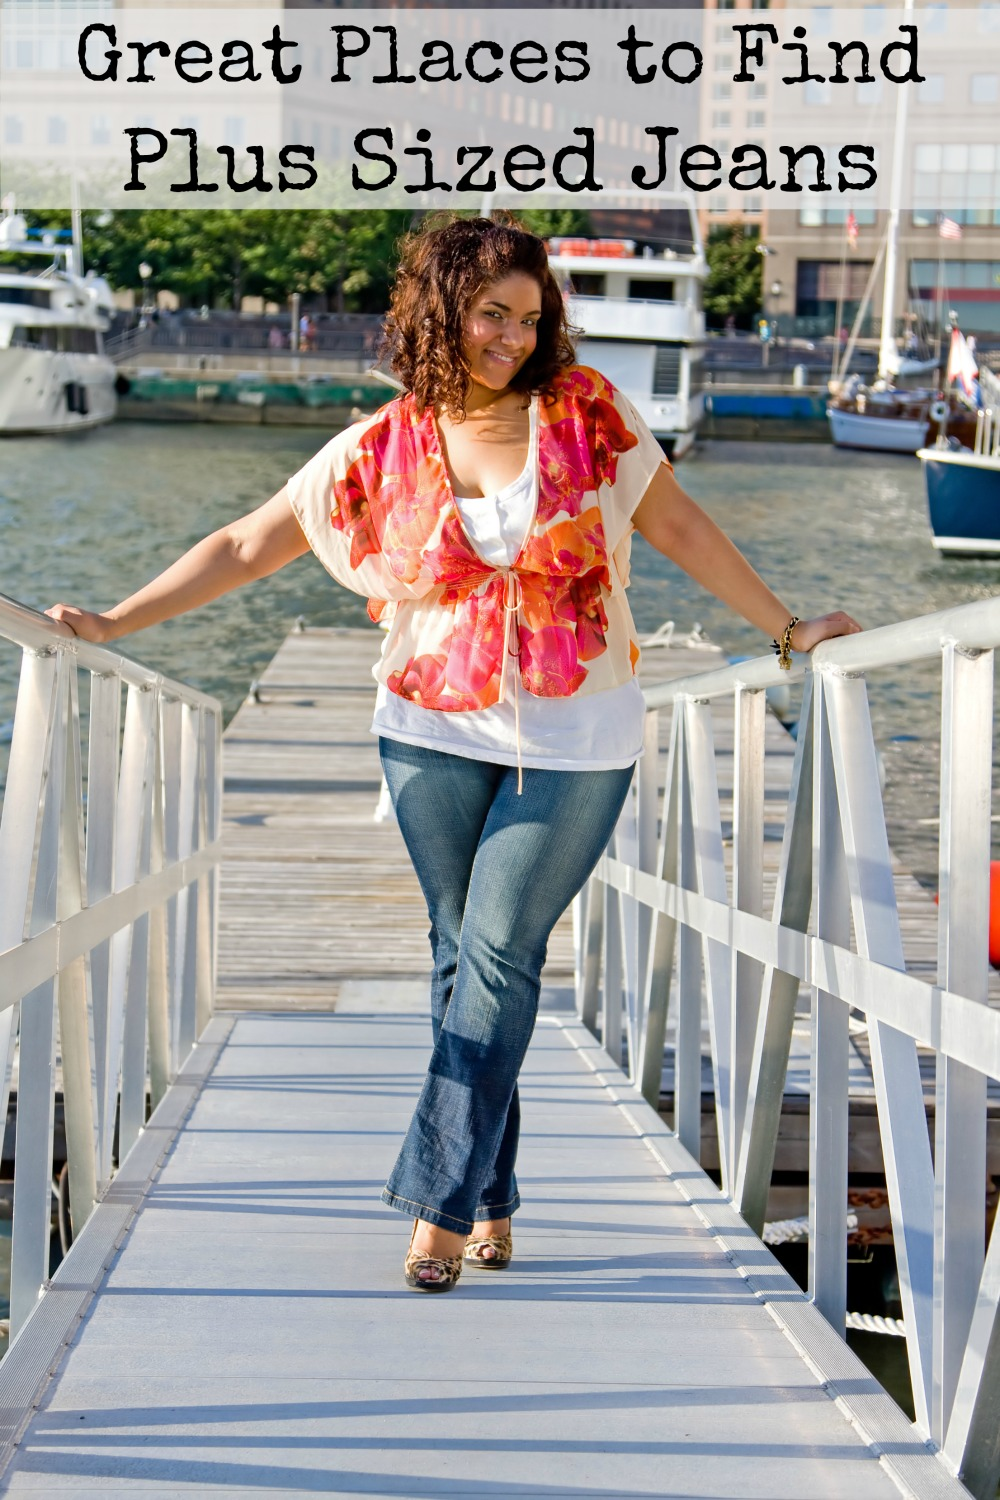 It's hard finding plus sized jeans. Here are some of our favorite places to shop for jeans that won't break the bank.